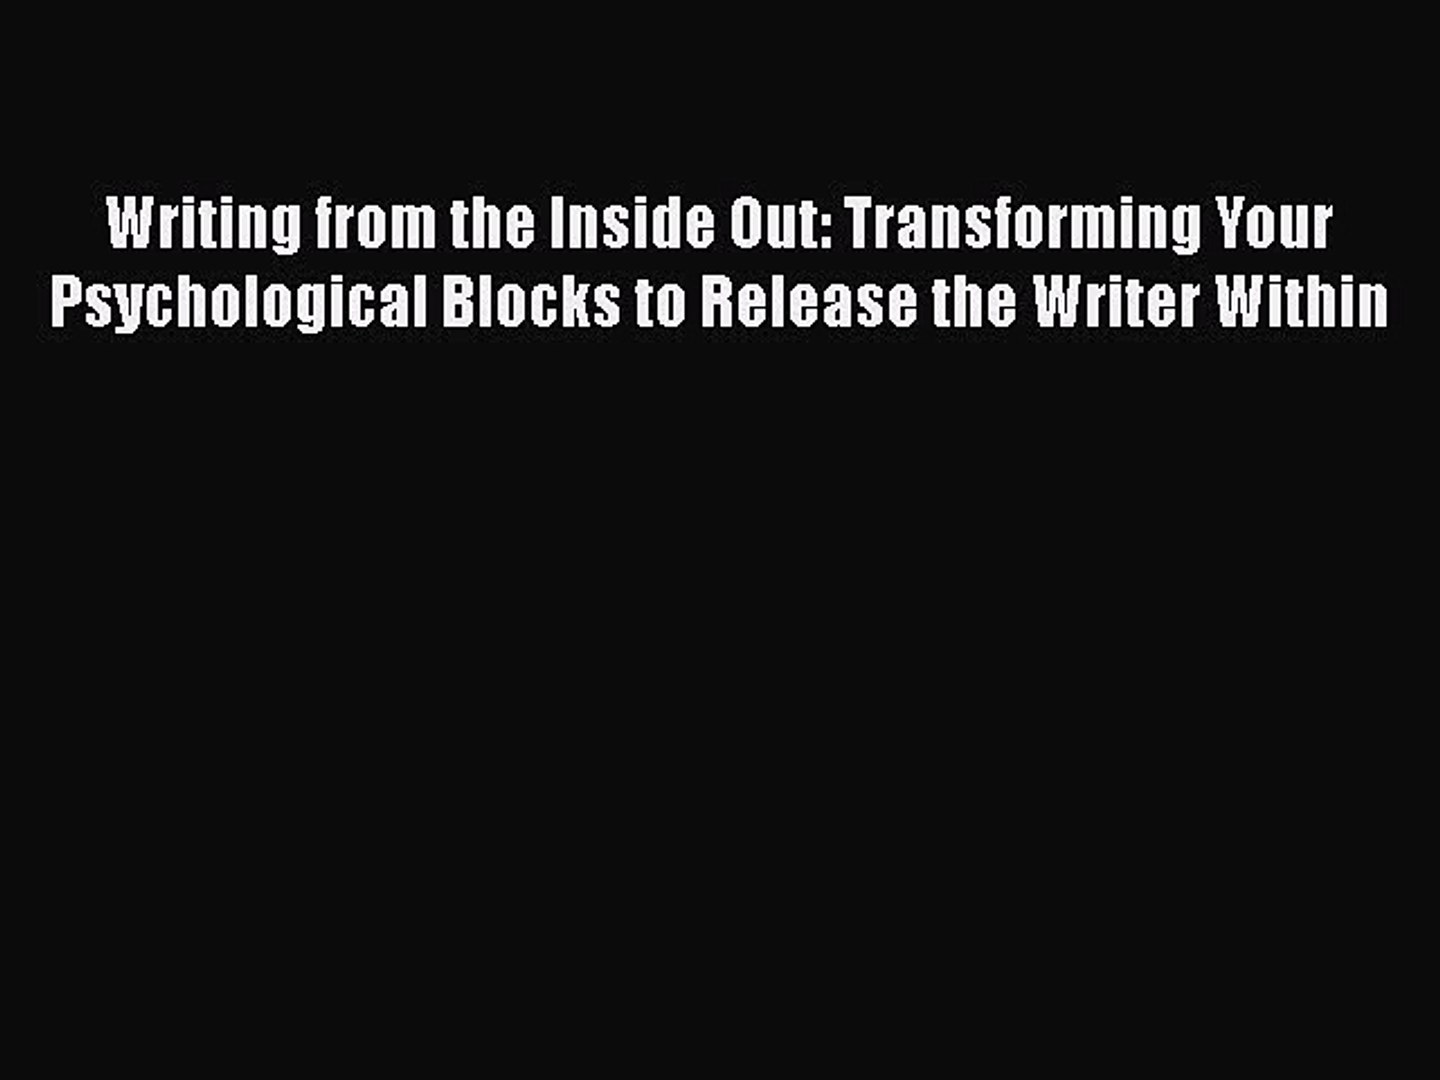 Read Writing from the Inside Out: Transforming Your Psychological Blocks to Release the Writer